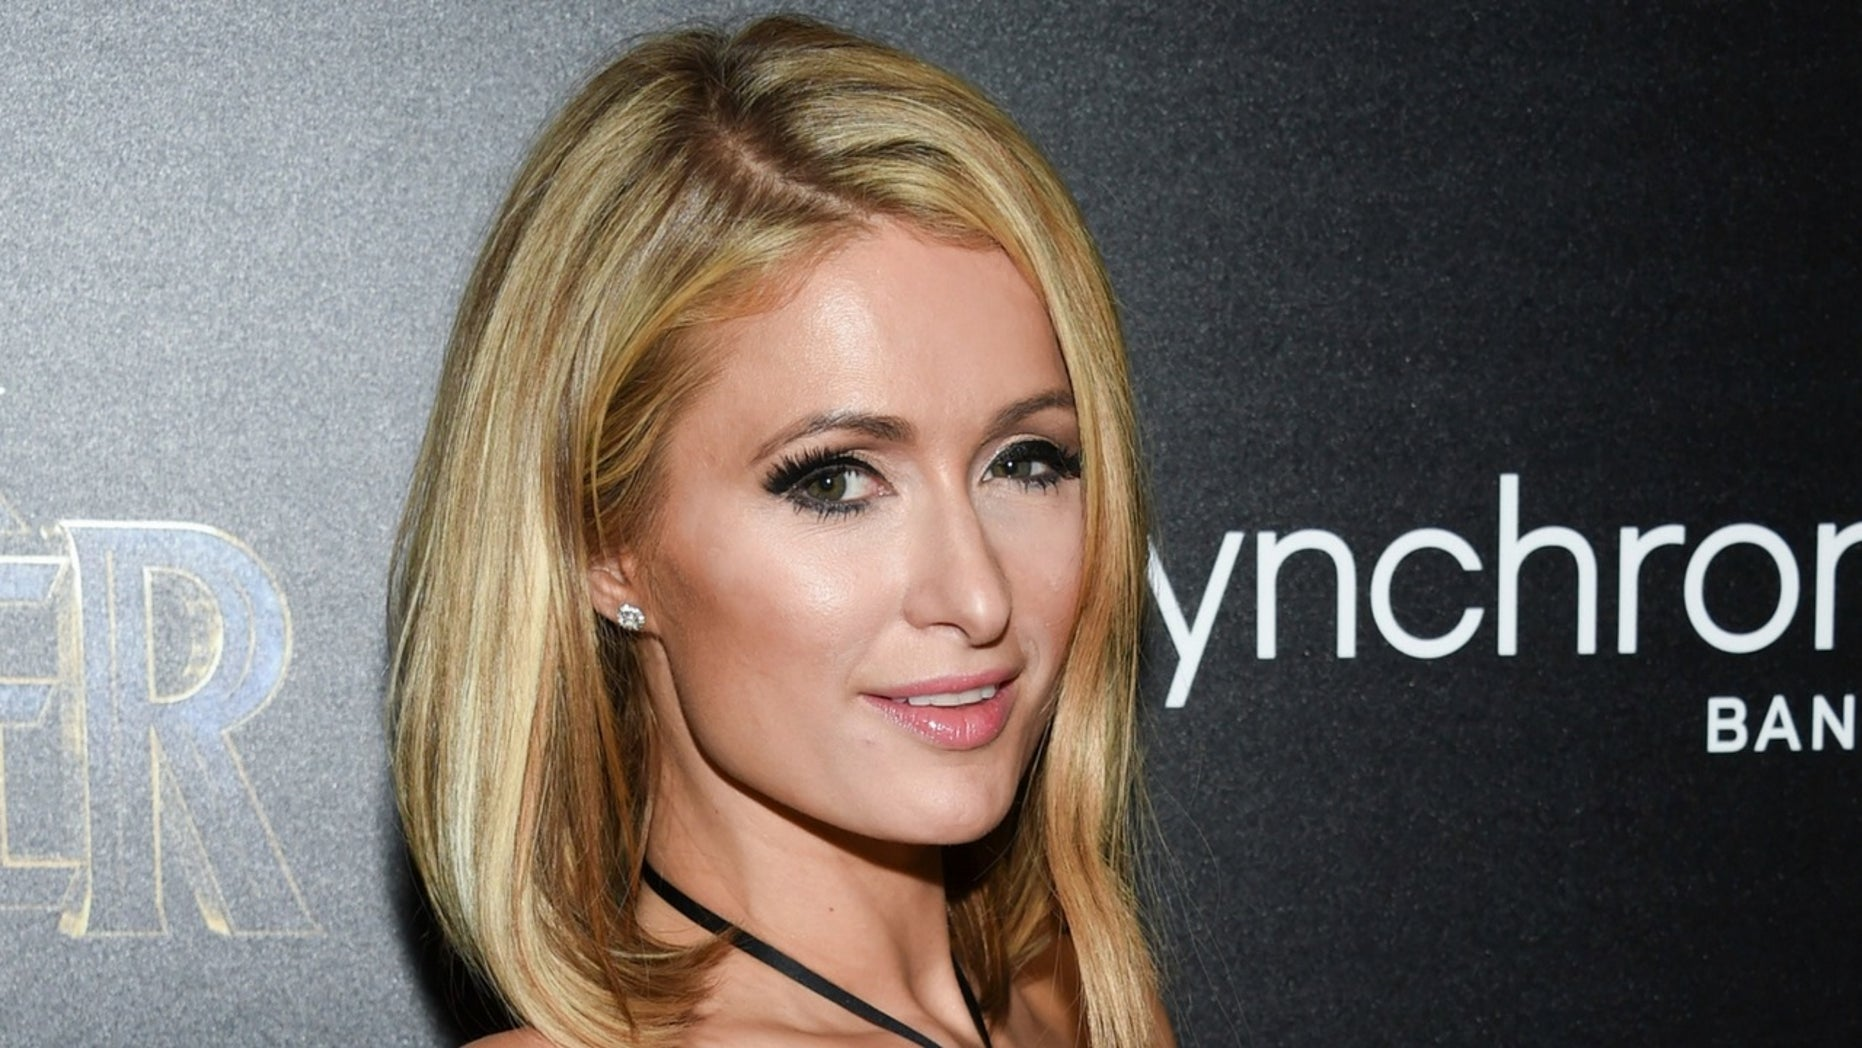 Paris Hilton gets candid on marriage and having a family.